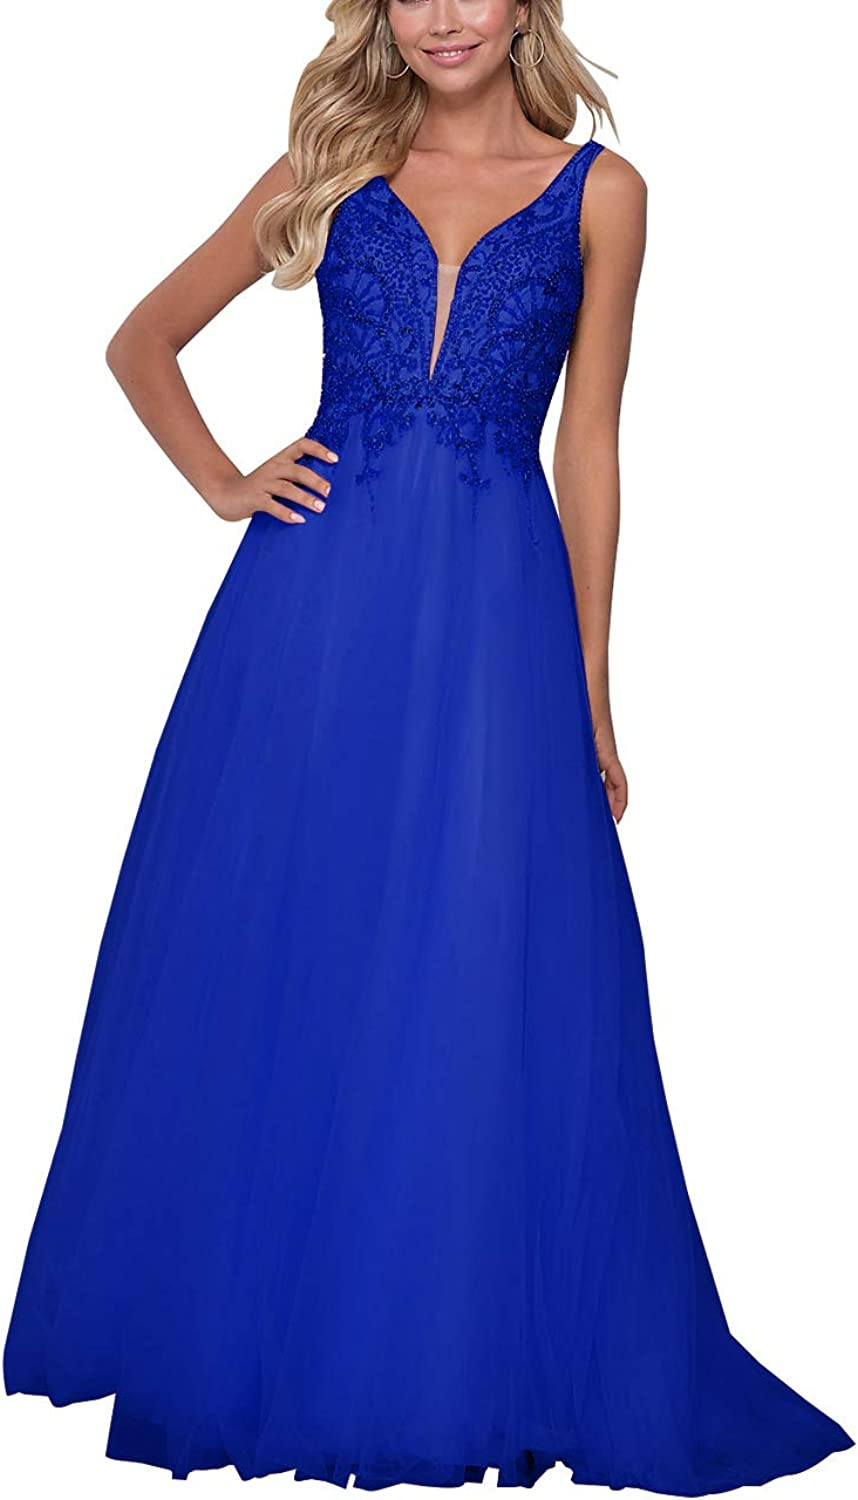 Beaded Prom Gown Long Tulle Backless V Neck Women's Evening Party Dresses